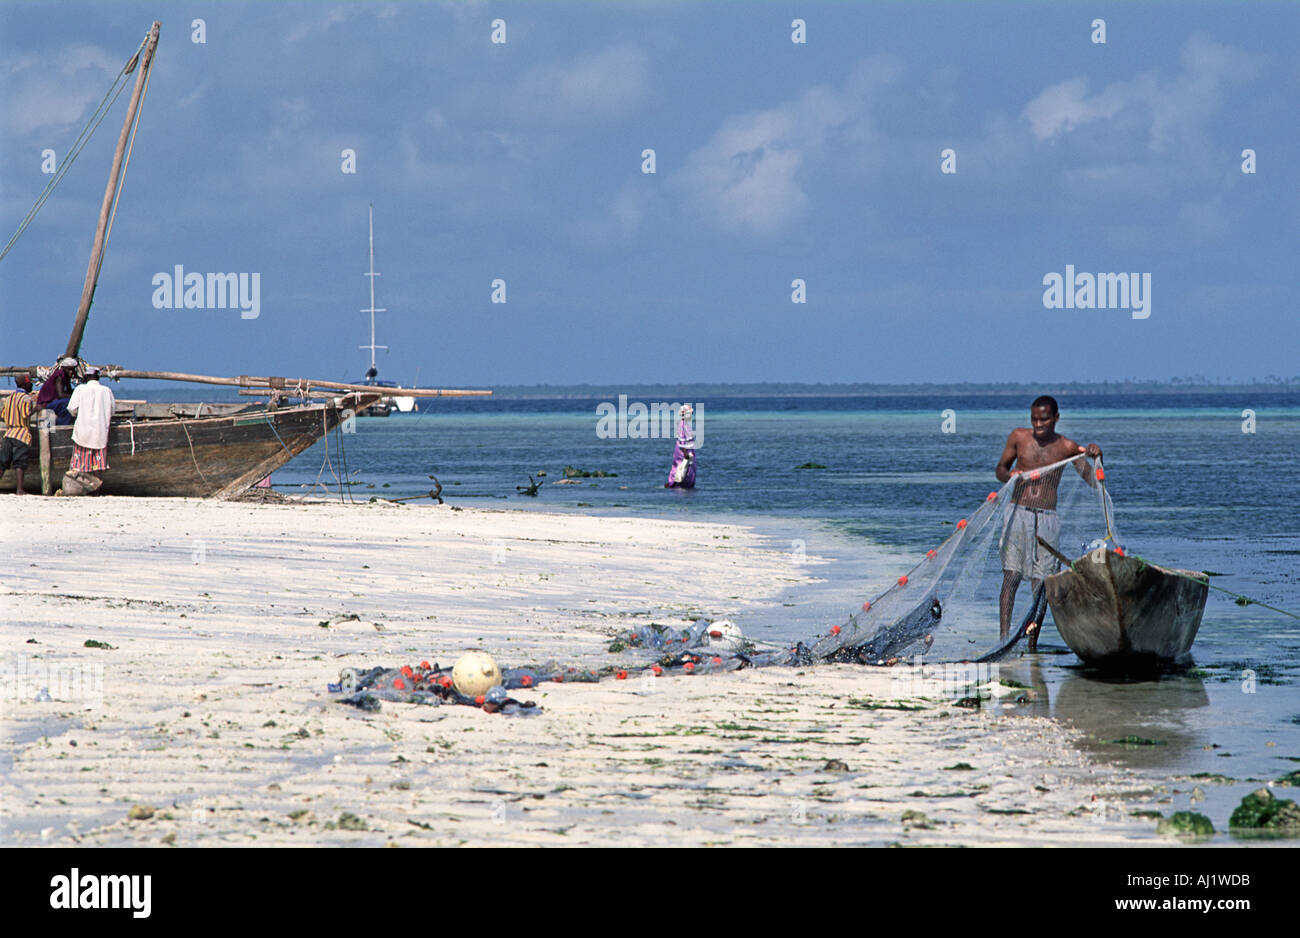 Fisherman tending to his net at the shore at low tide Nungwe Unguja Zanzibar Tanzania East Africa - Stock Image